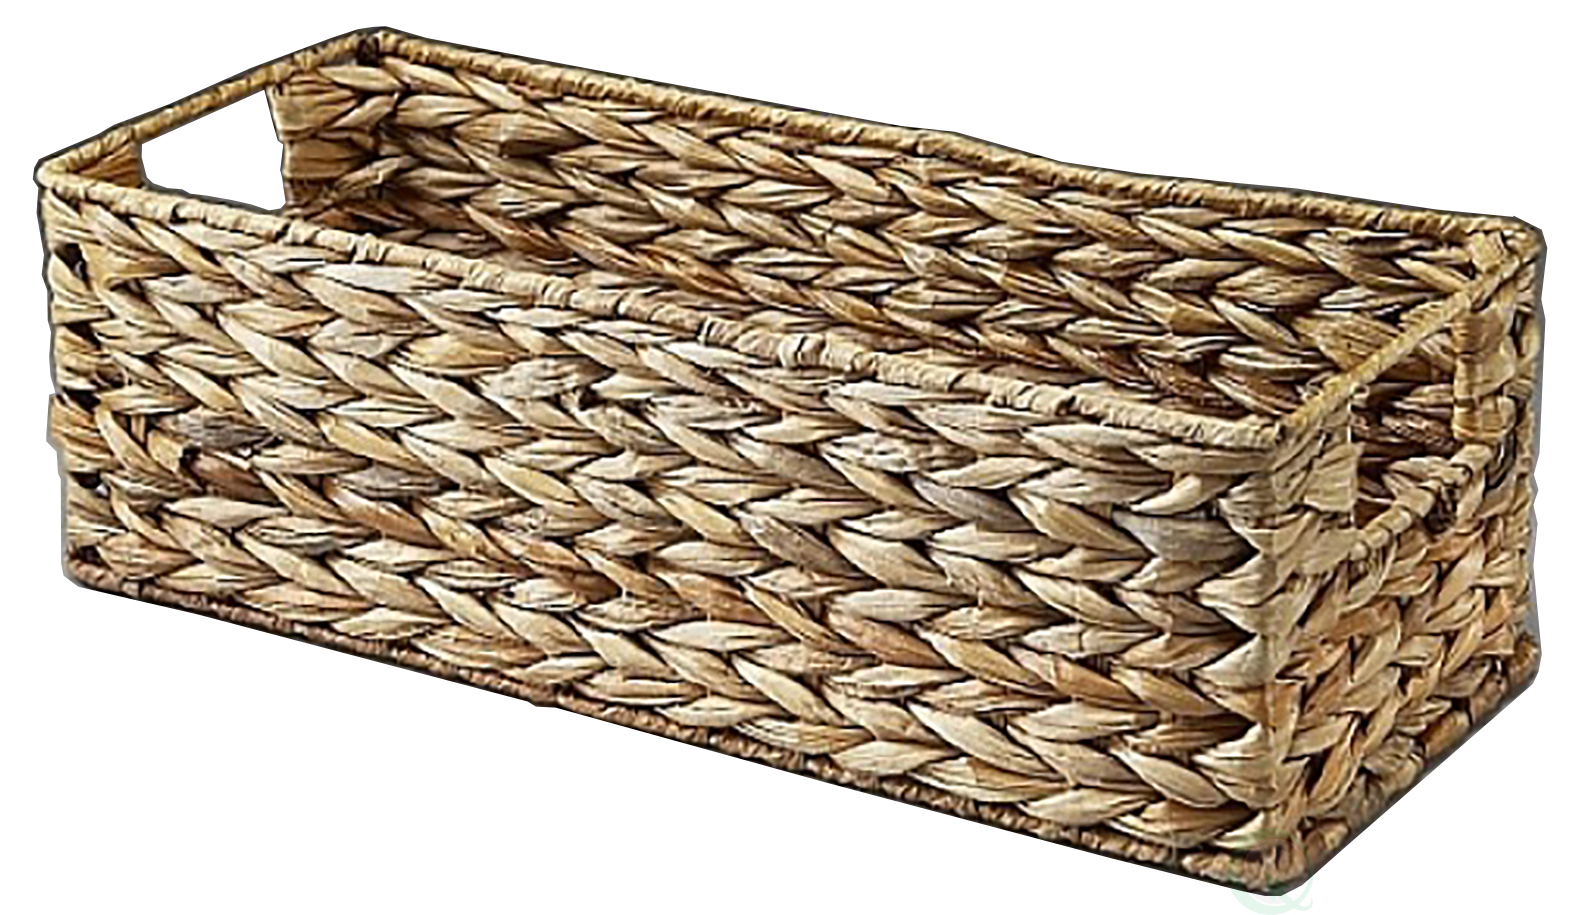 Beau Woven Rectangular Storage Basket With Cut Out Handles